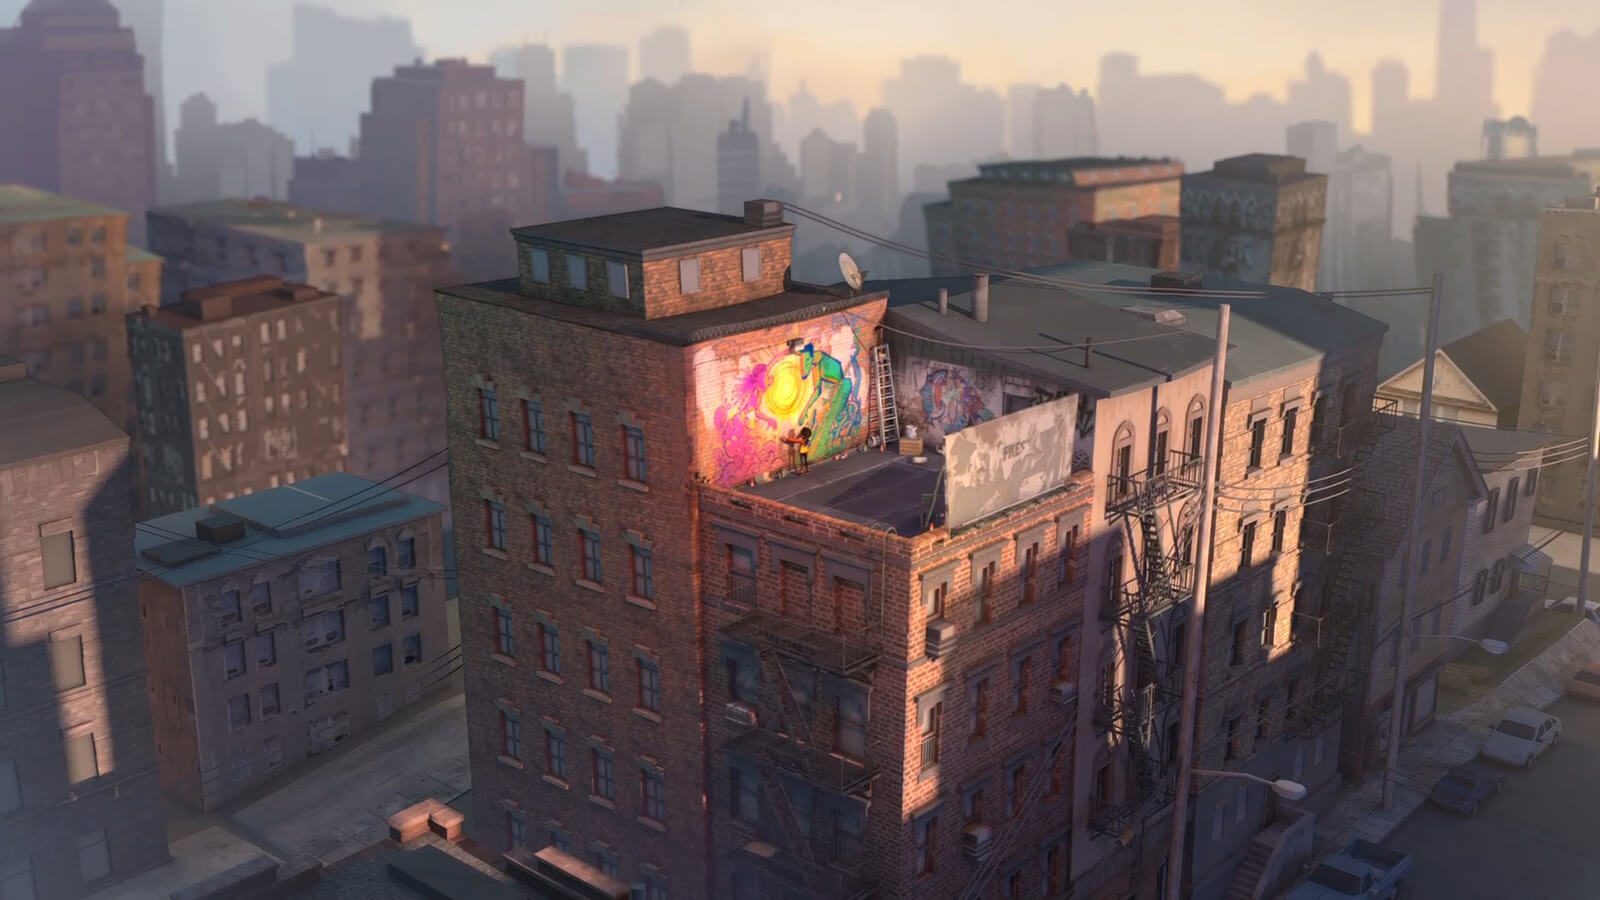 A brick apartment at dawn in an urban area. A girl is seen on the room standing in front of a colorful spray-painted artwork.